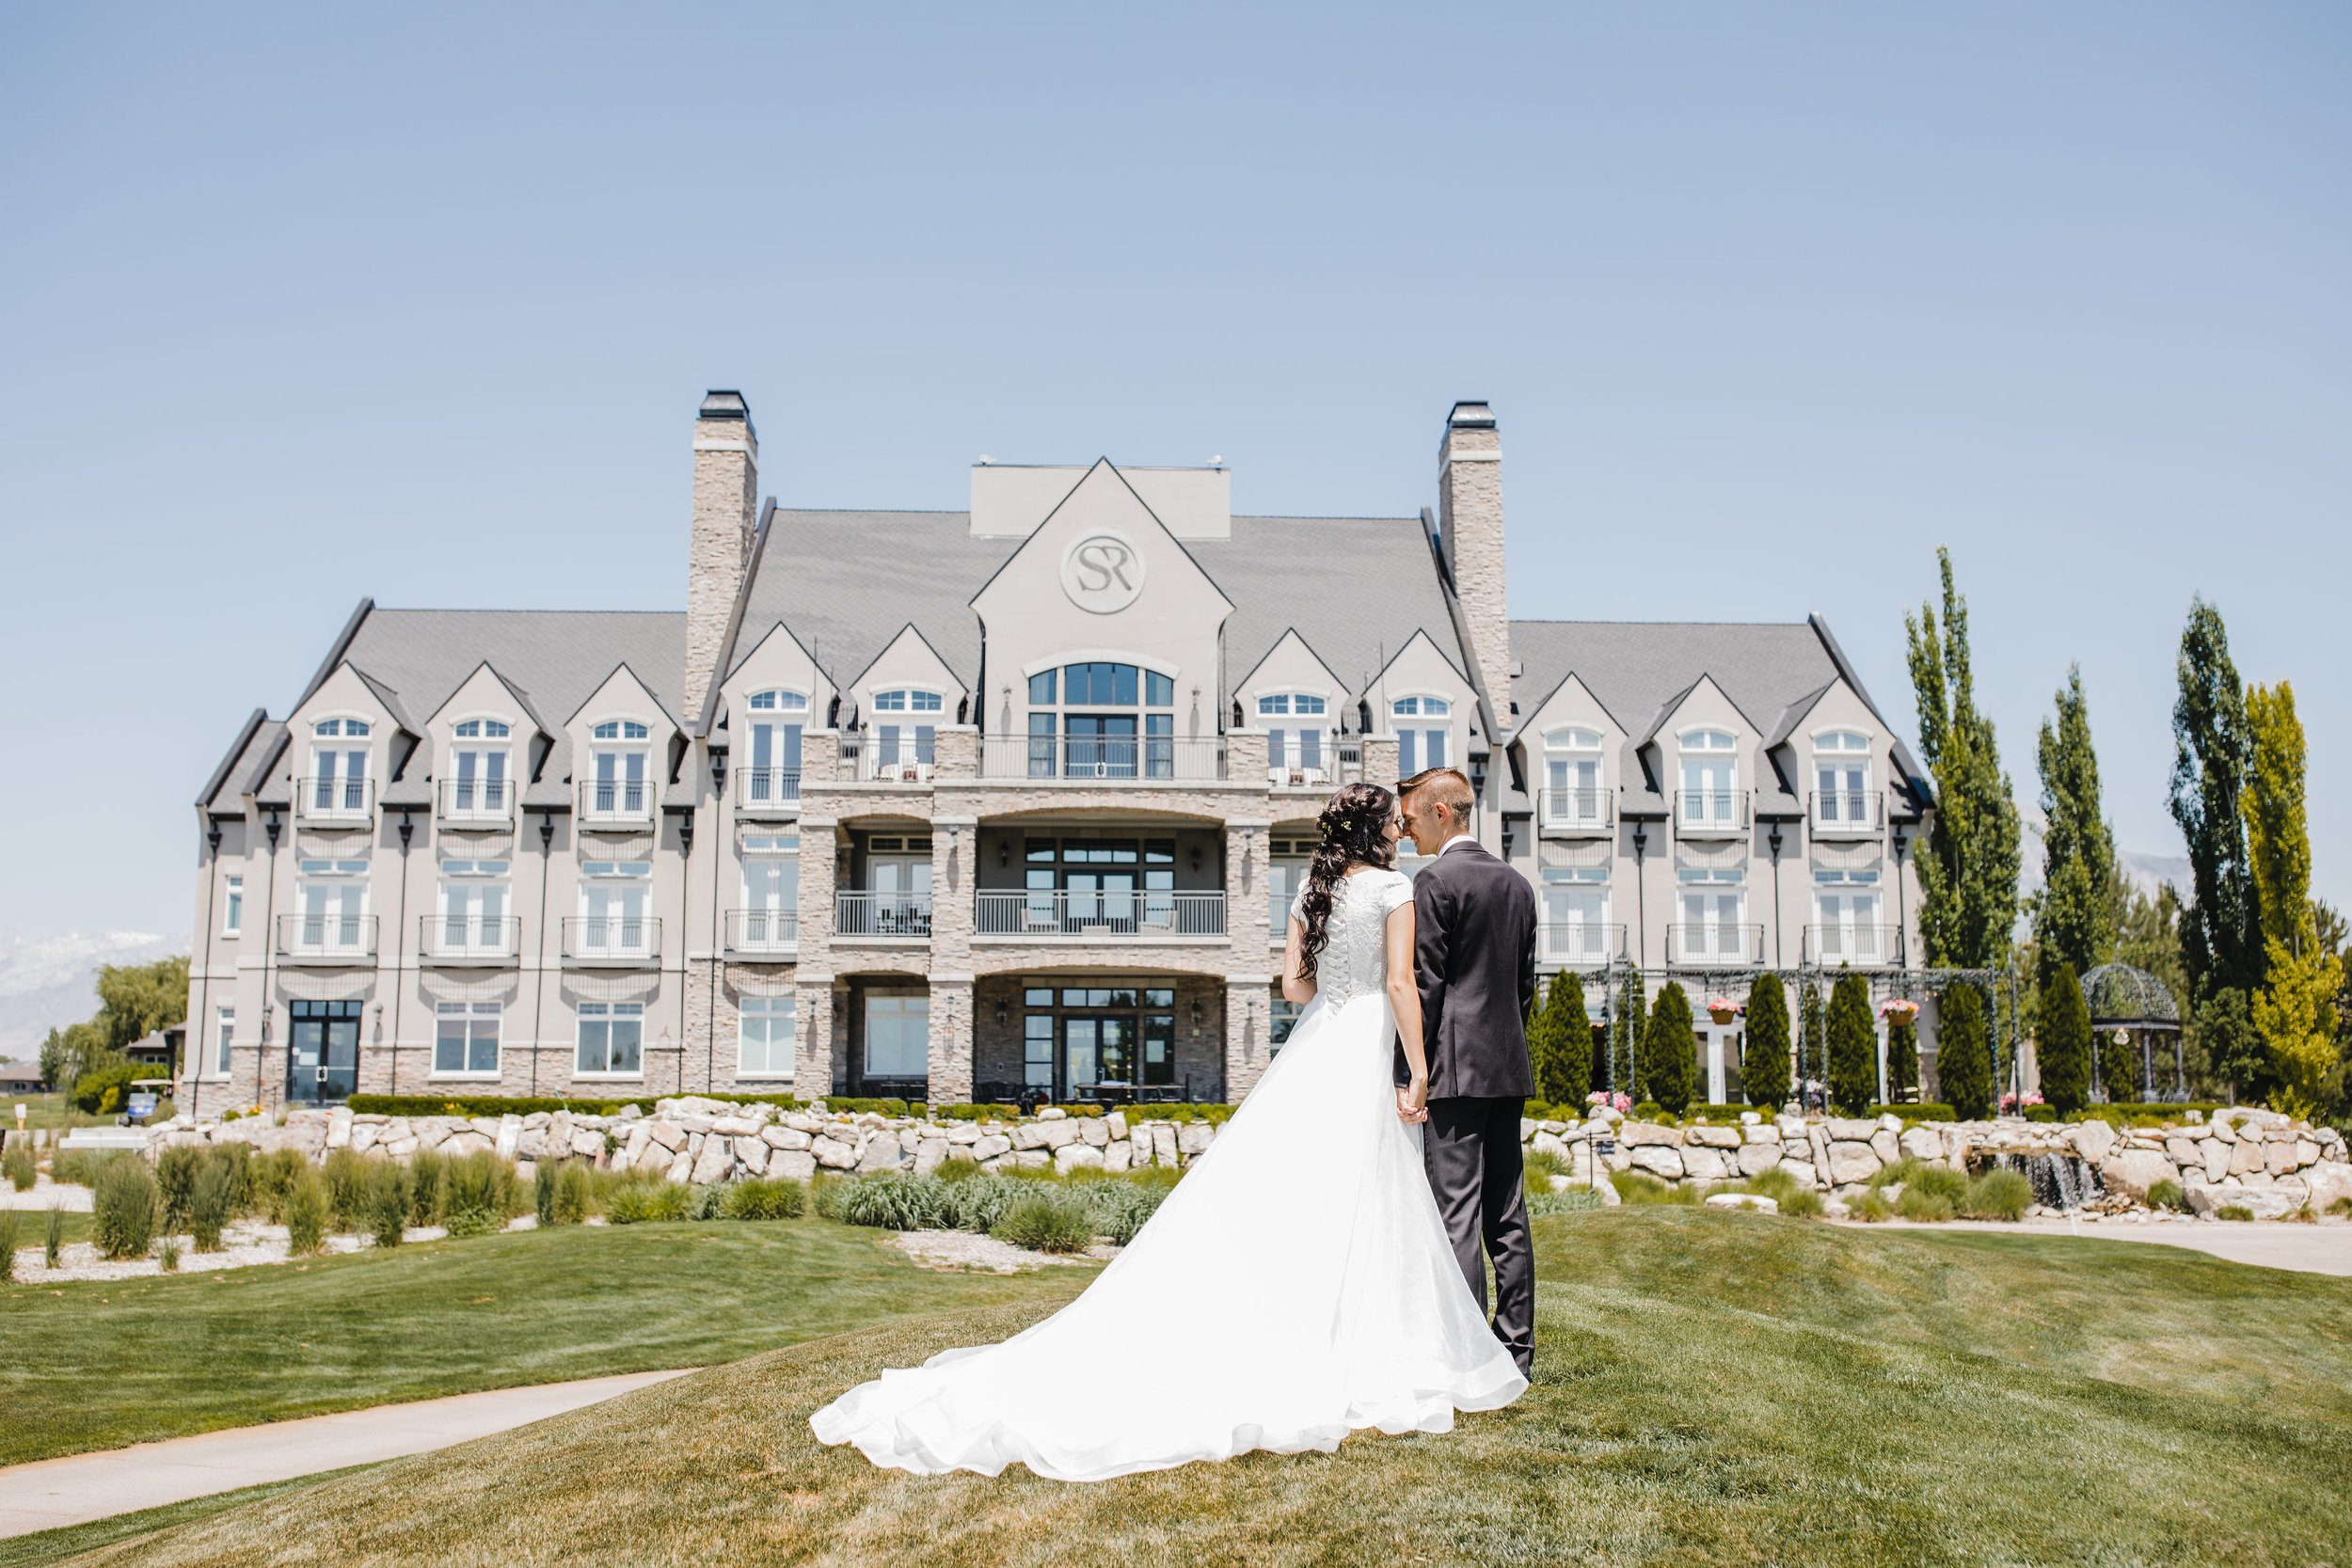 sleepy ridge golf course wedding day venue bride and groom orem utah wedding photographer calli richards